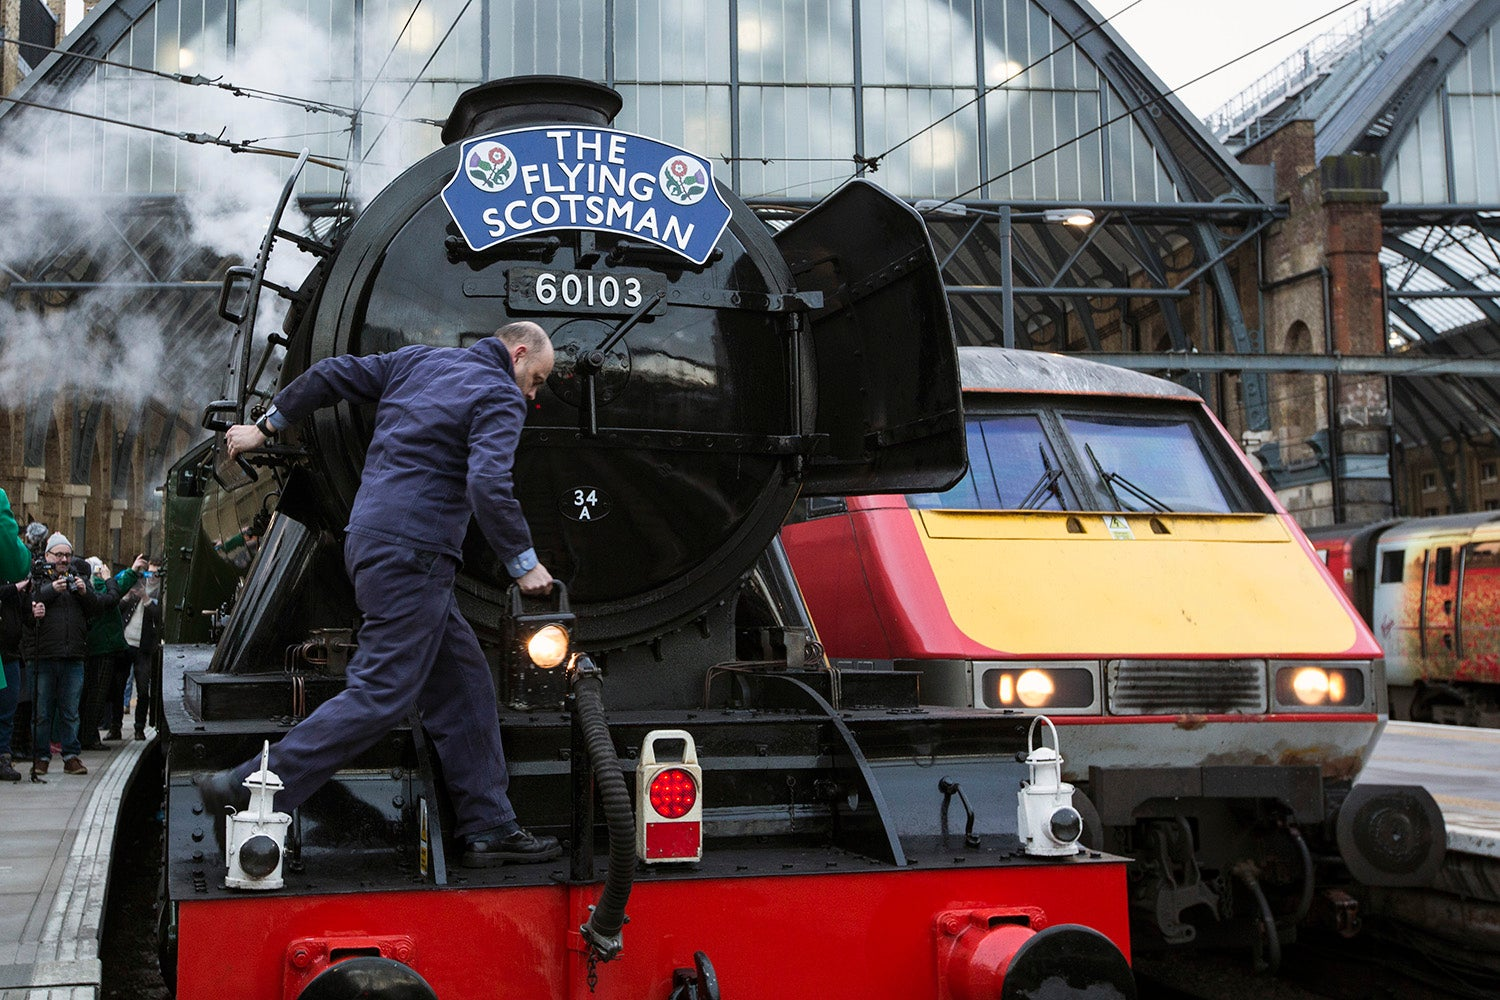 After Years of Turmoil, a Legendary Steam Engine Rolls Again